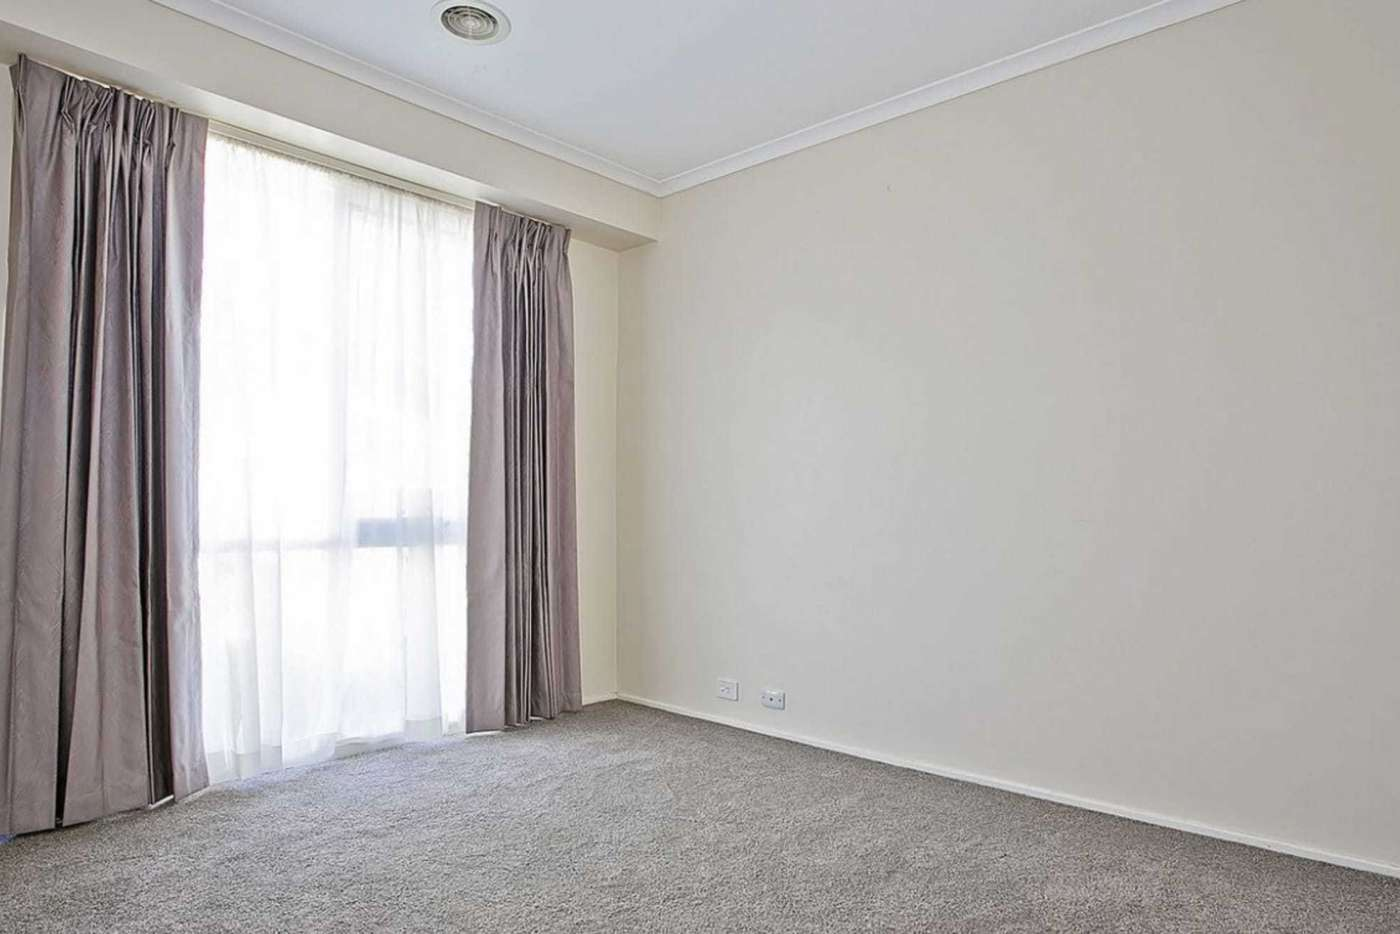 Sixth view of Homely house listing, 4 Mirambeek Road, Hoppers Crossing VIC 3029